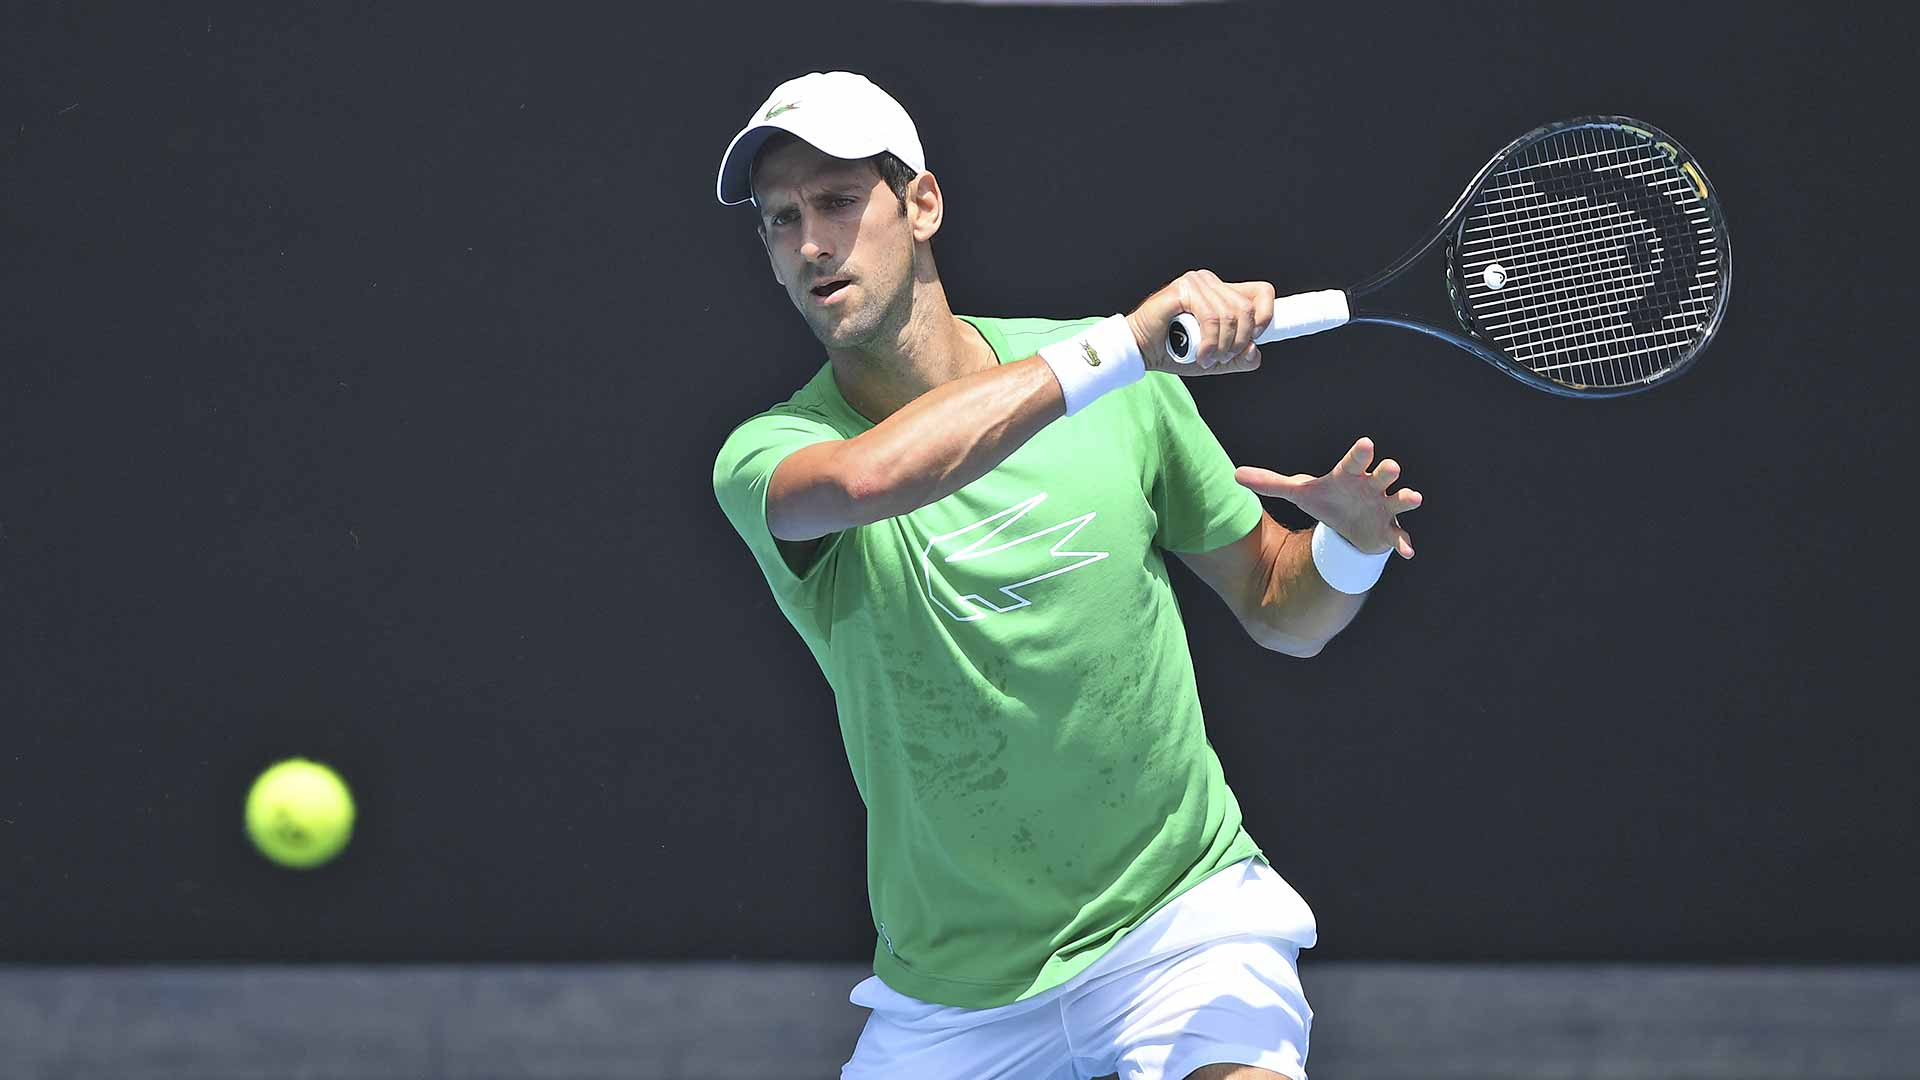 Djokovic Inspired By Nadal And Federer   ATP Tour   Tennis